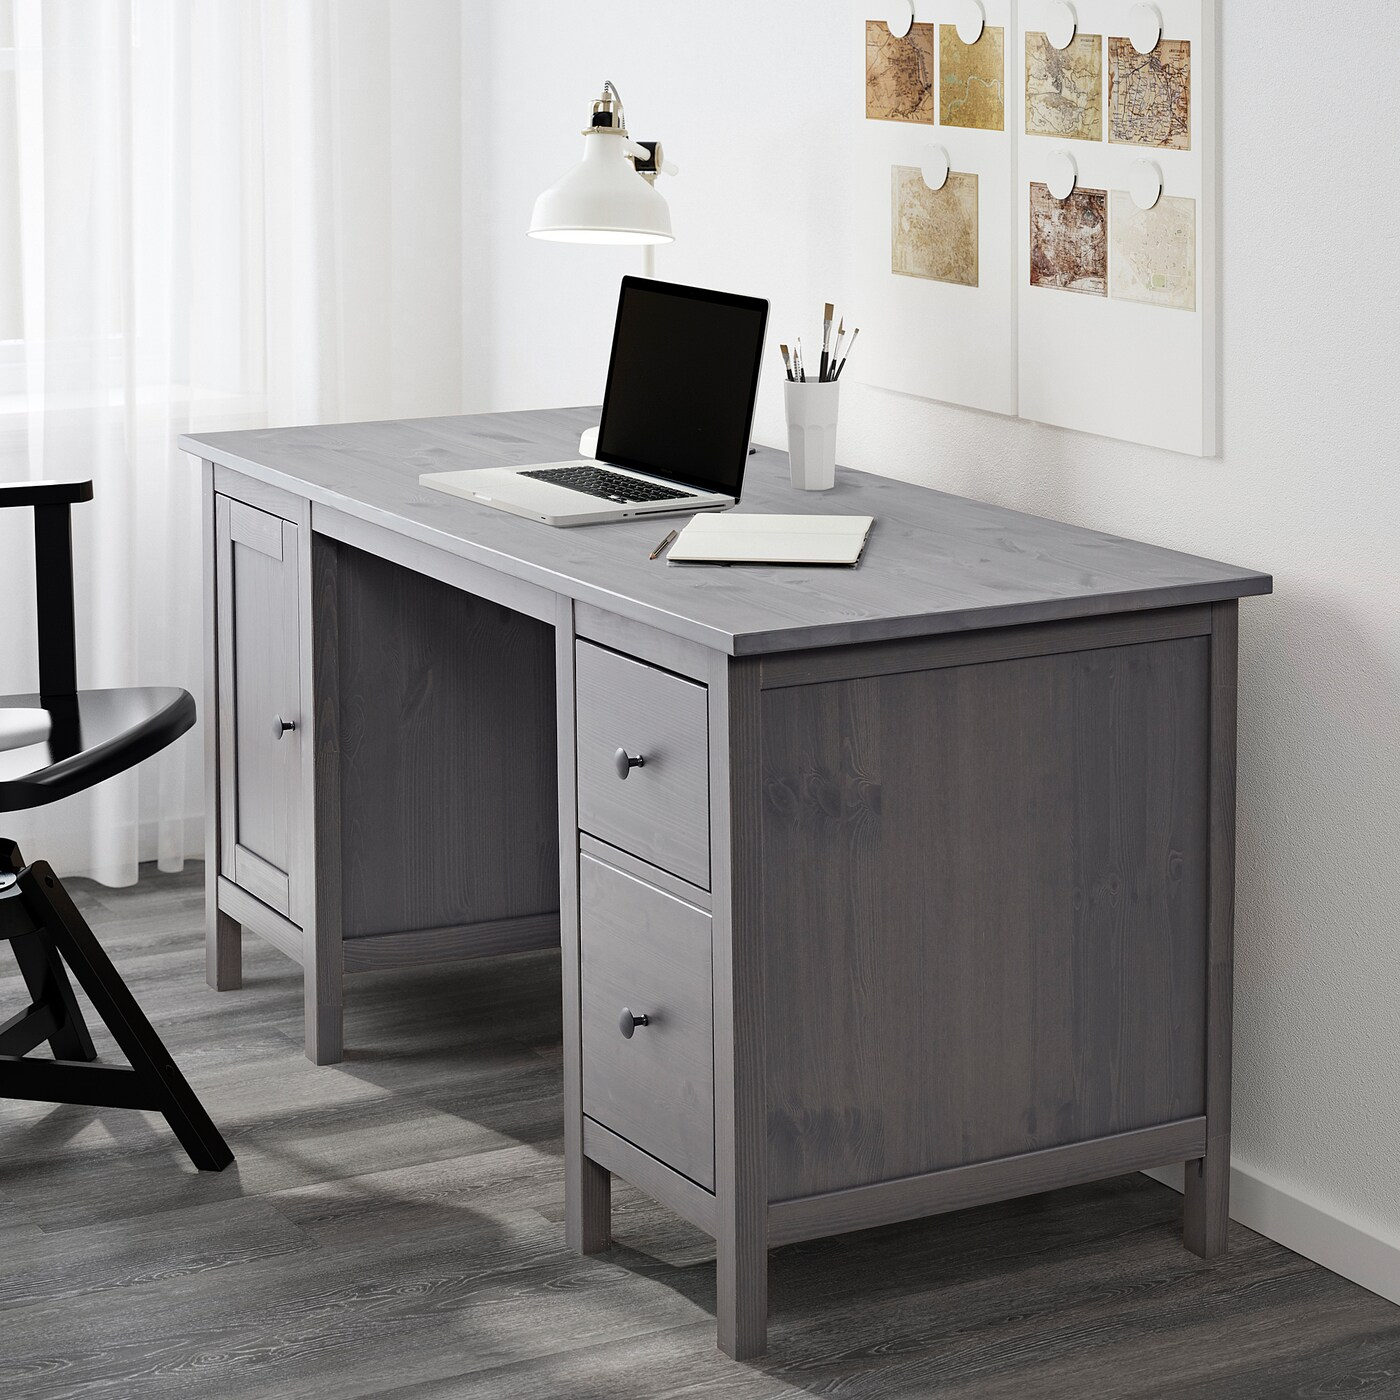 Hemnes Desk Dark Gray Stained 61x255 8